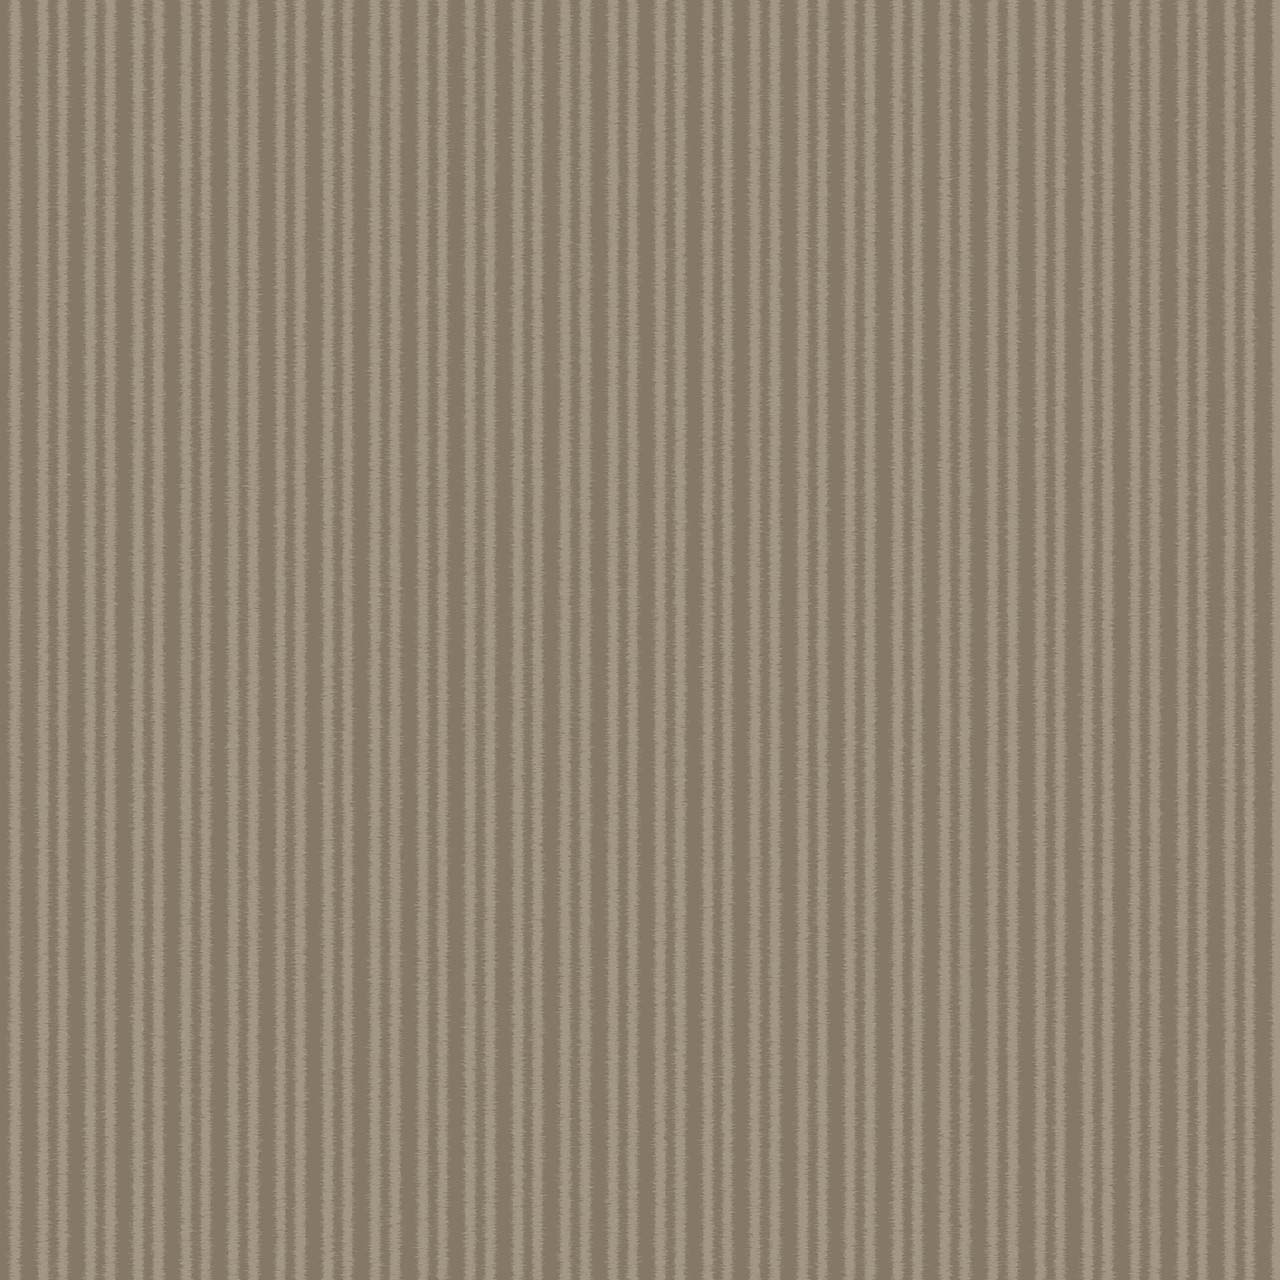 COTTON STRIPE LATTE A Milan-Wallpaper-CO00126